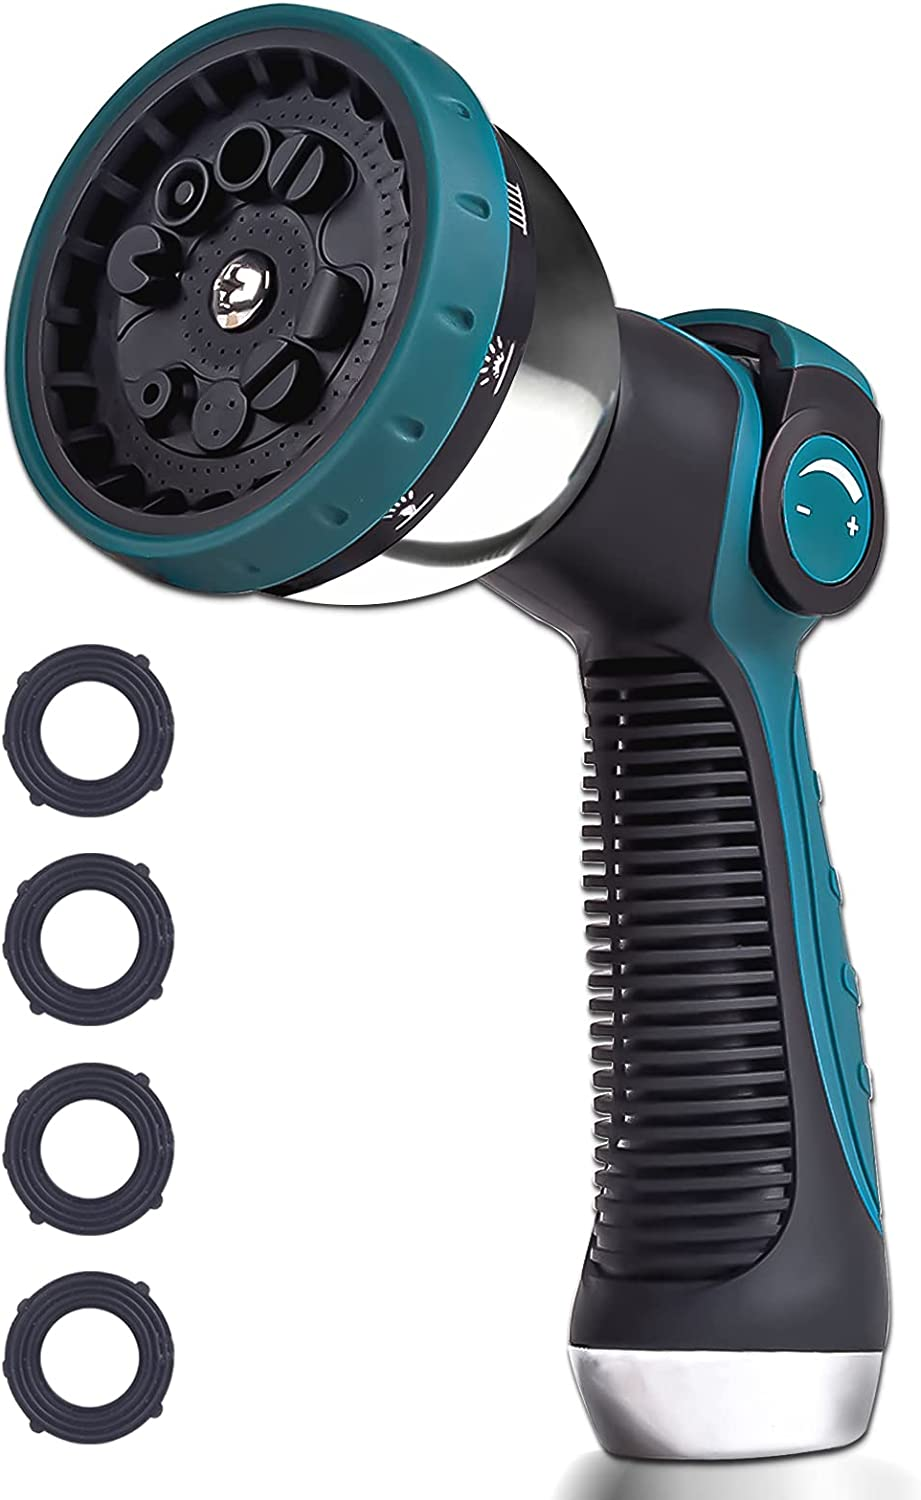 Forzolit Garden Hose Nozzle Sprayer Heavy Duty, Features 10 Spray Patterns, Thumb Control, HIGH Pressure Garden Hose Sprayer for Garden & Lawns Watering, Cleaning, Car Washing& Pets